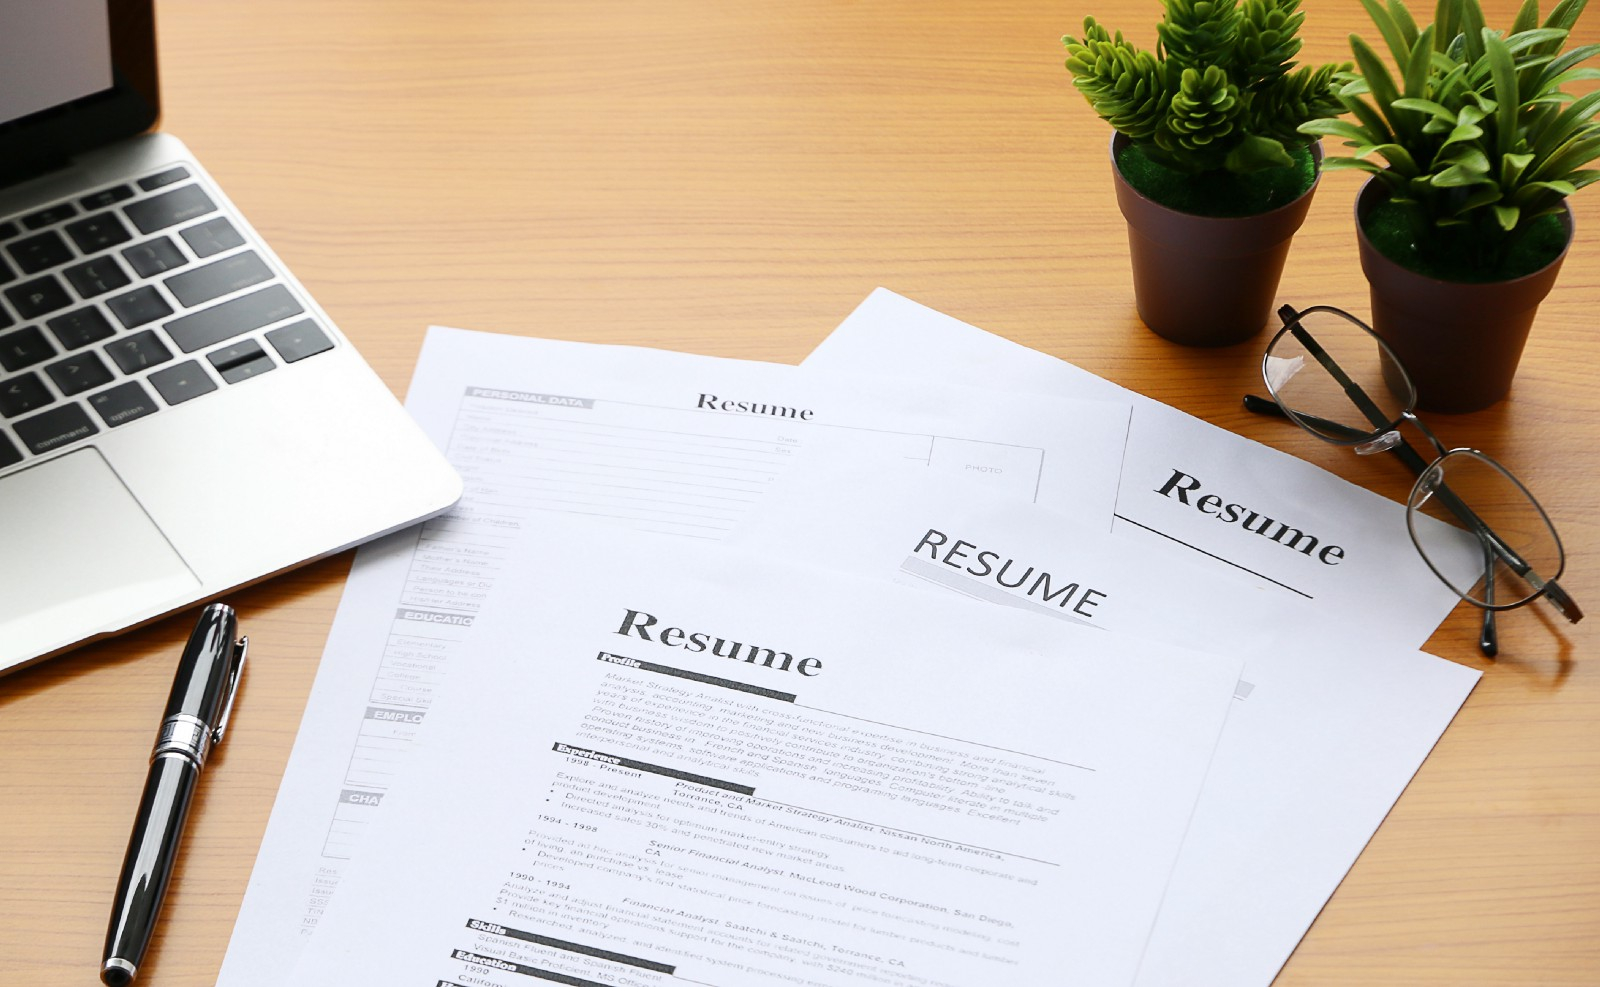 How To Write An Awesome Junior Developer Resume In A Few Simple Steps